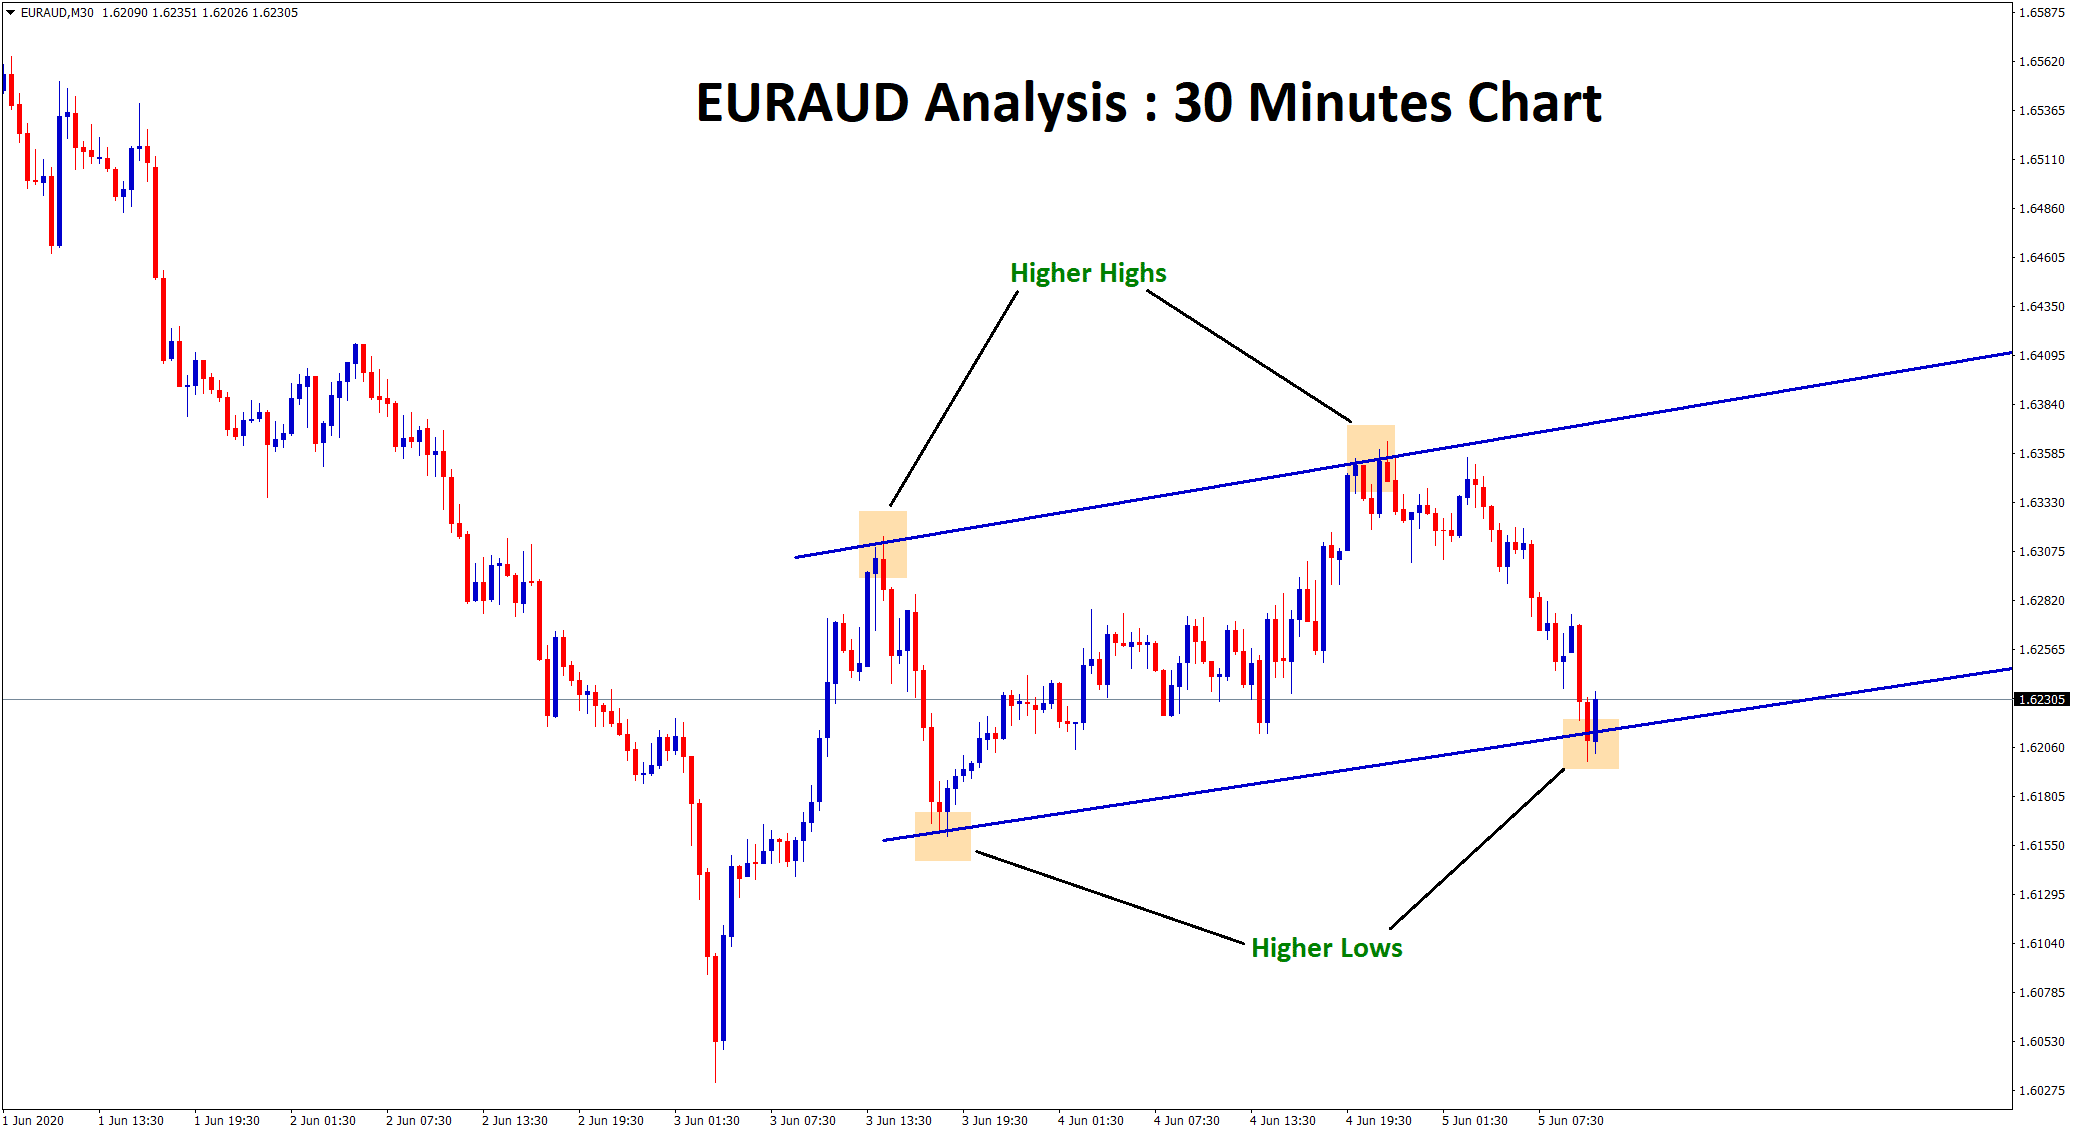 euraud higher highs higher lows in 30 minute chart